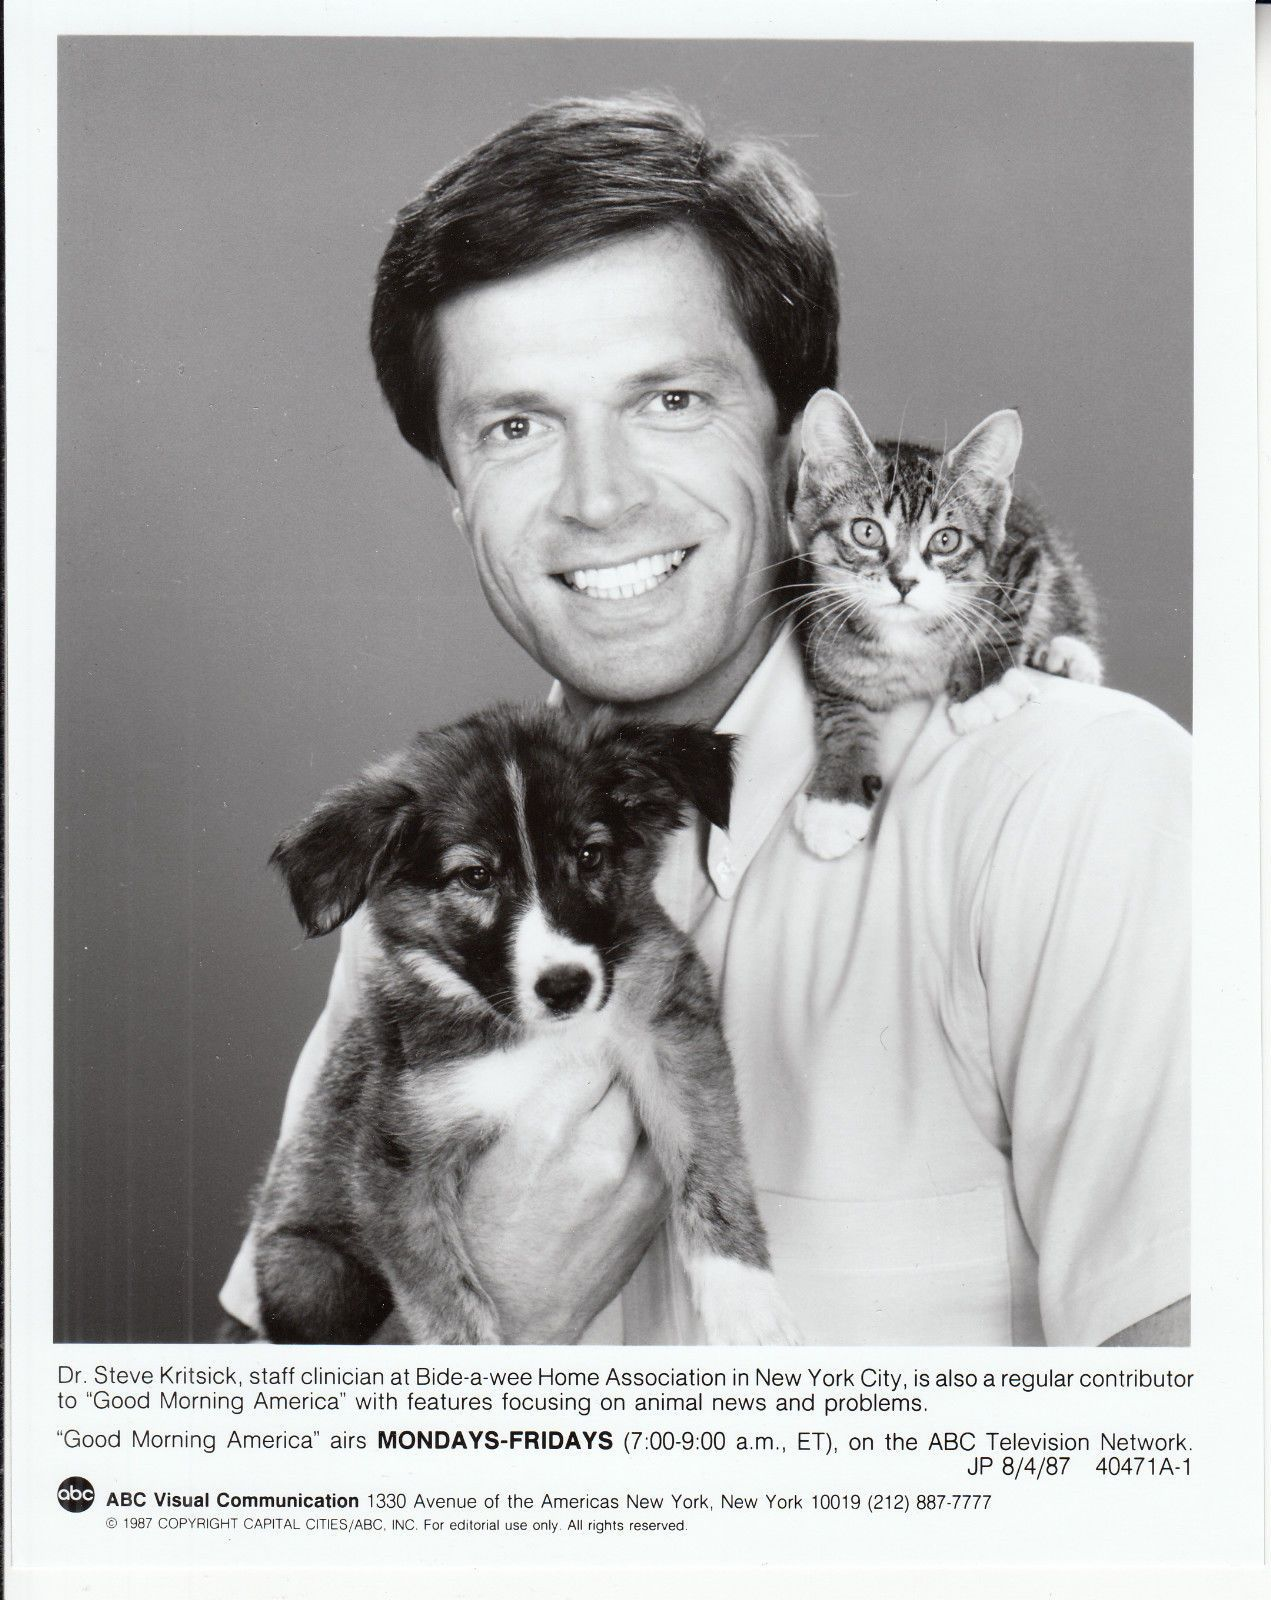 """Dr. S.M. Kritsick was a regular on the TV program Good Morning America, where he provided advice and information about pet care. He was known as the """"veterinarian to the stars."""" His TV career began in 1978 and included nine years on Romper Room and CNN. Kritsick died of AIDS-related illness in 1994 and was survived by his companion of 3 years, civil engineer Art Campbell. He was the author of two books, """"Dr Kritsick's Tender Loving Cat Care"""" and """"Creature Comforts: The Adventures of a City…"""